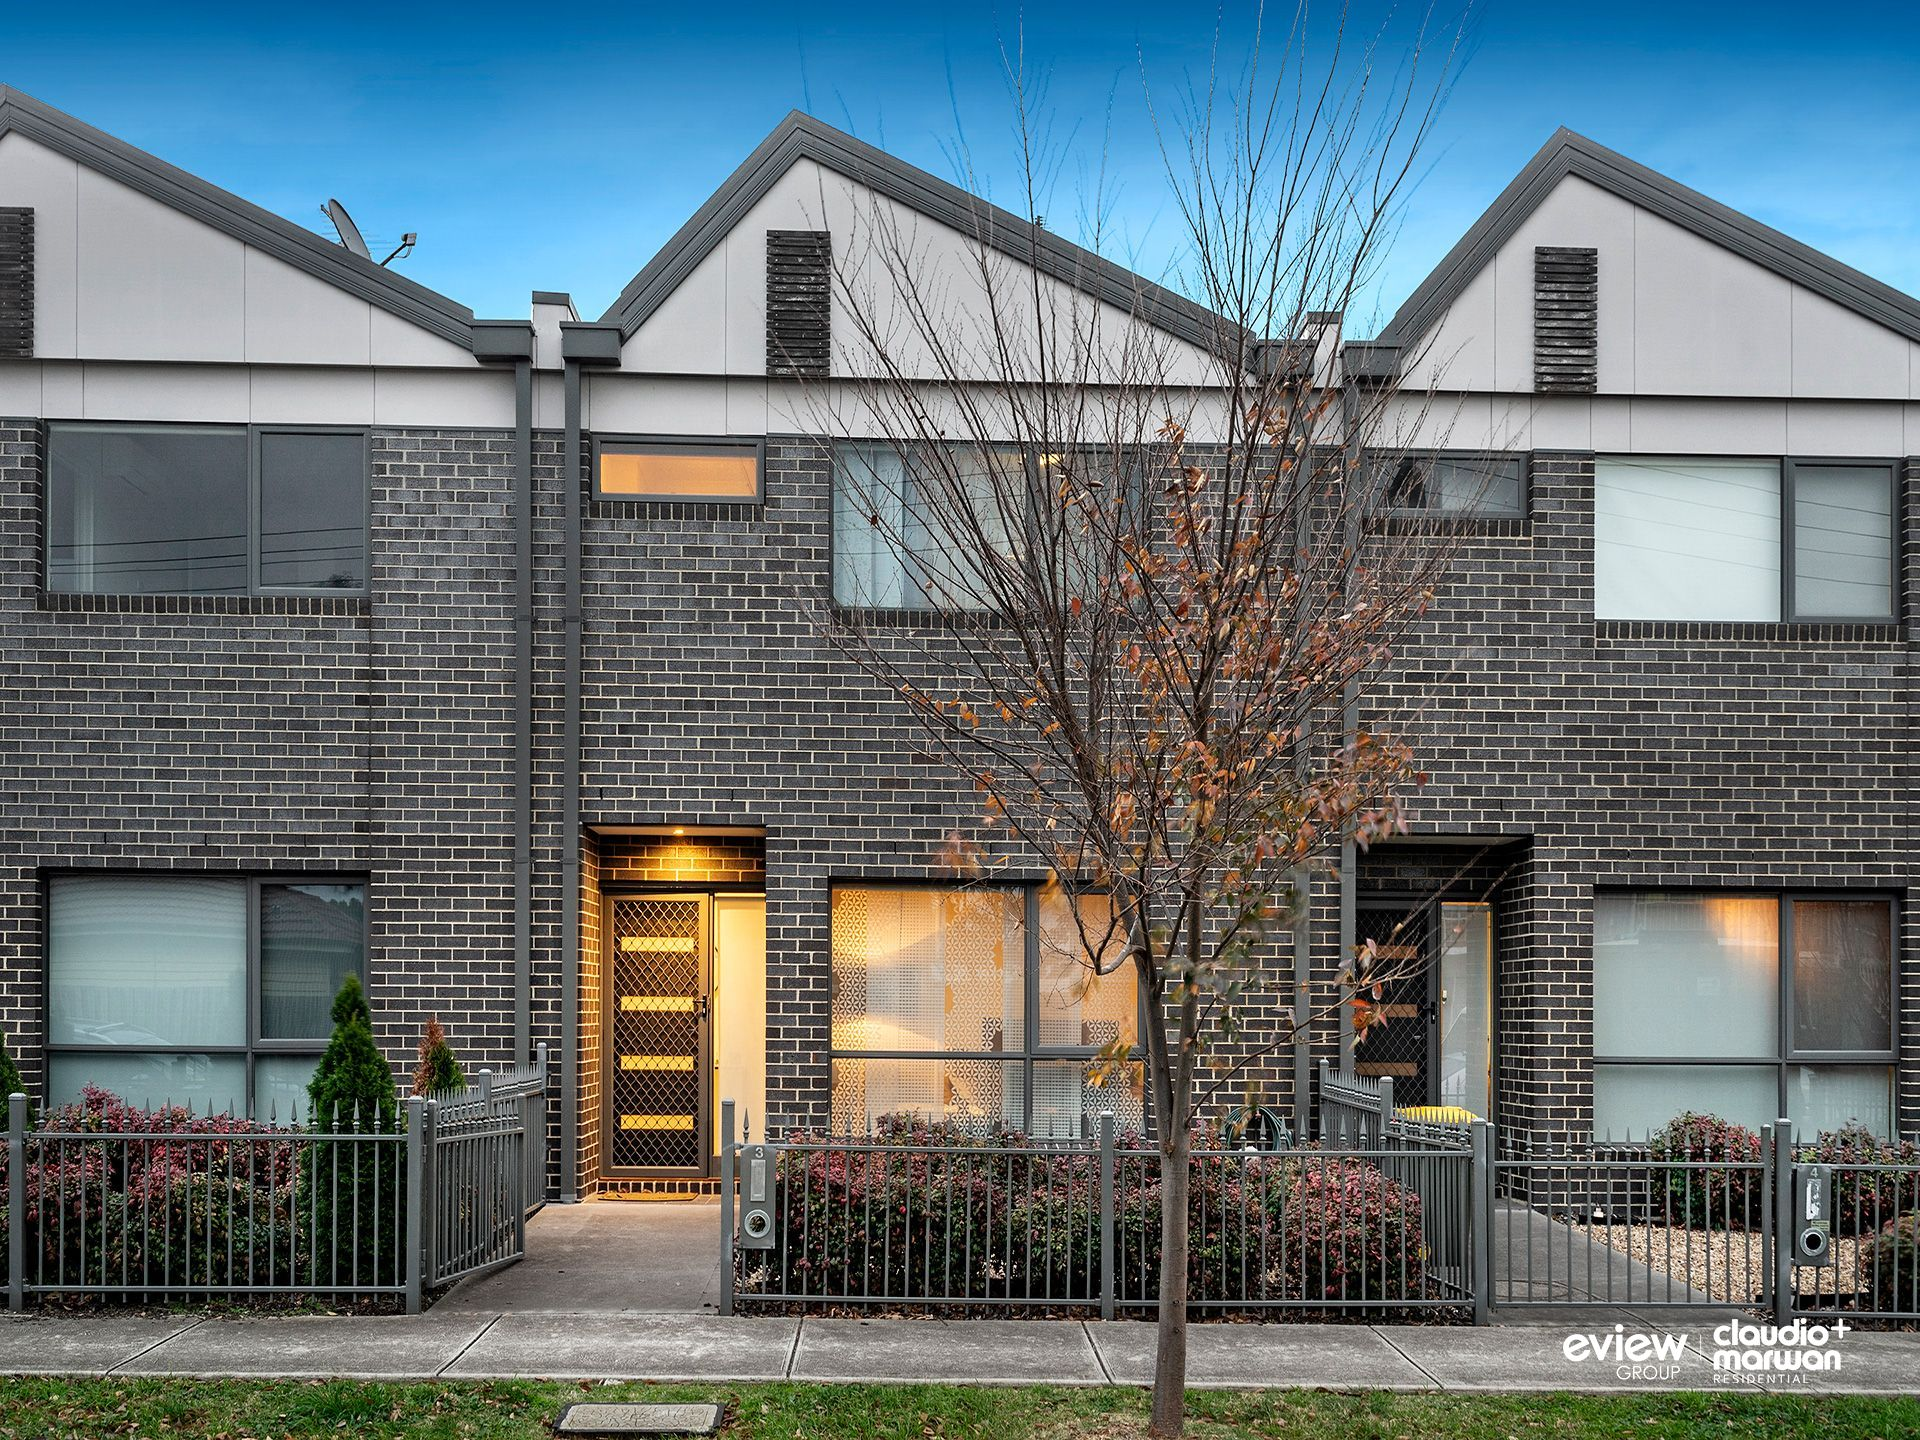 3/253 Derby Street, PASCOE VALE, VIC, 3044 - Image